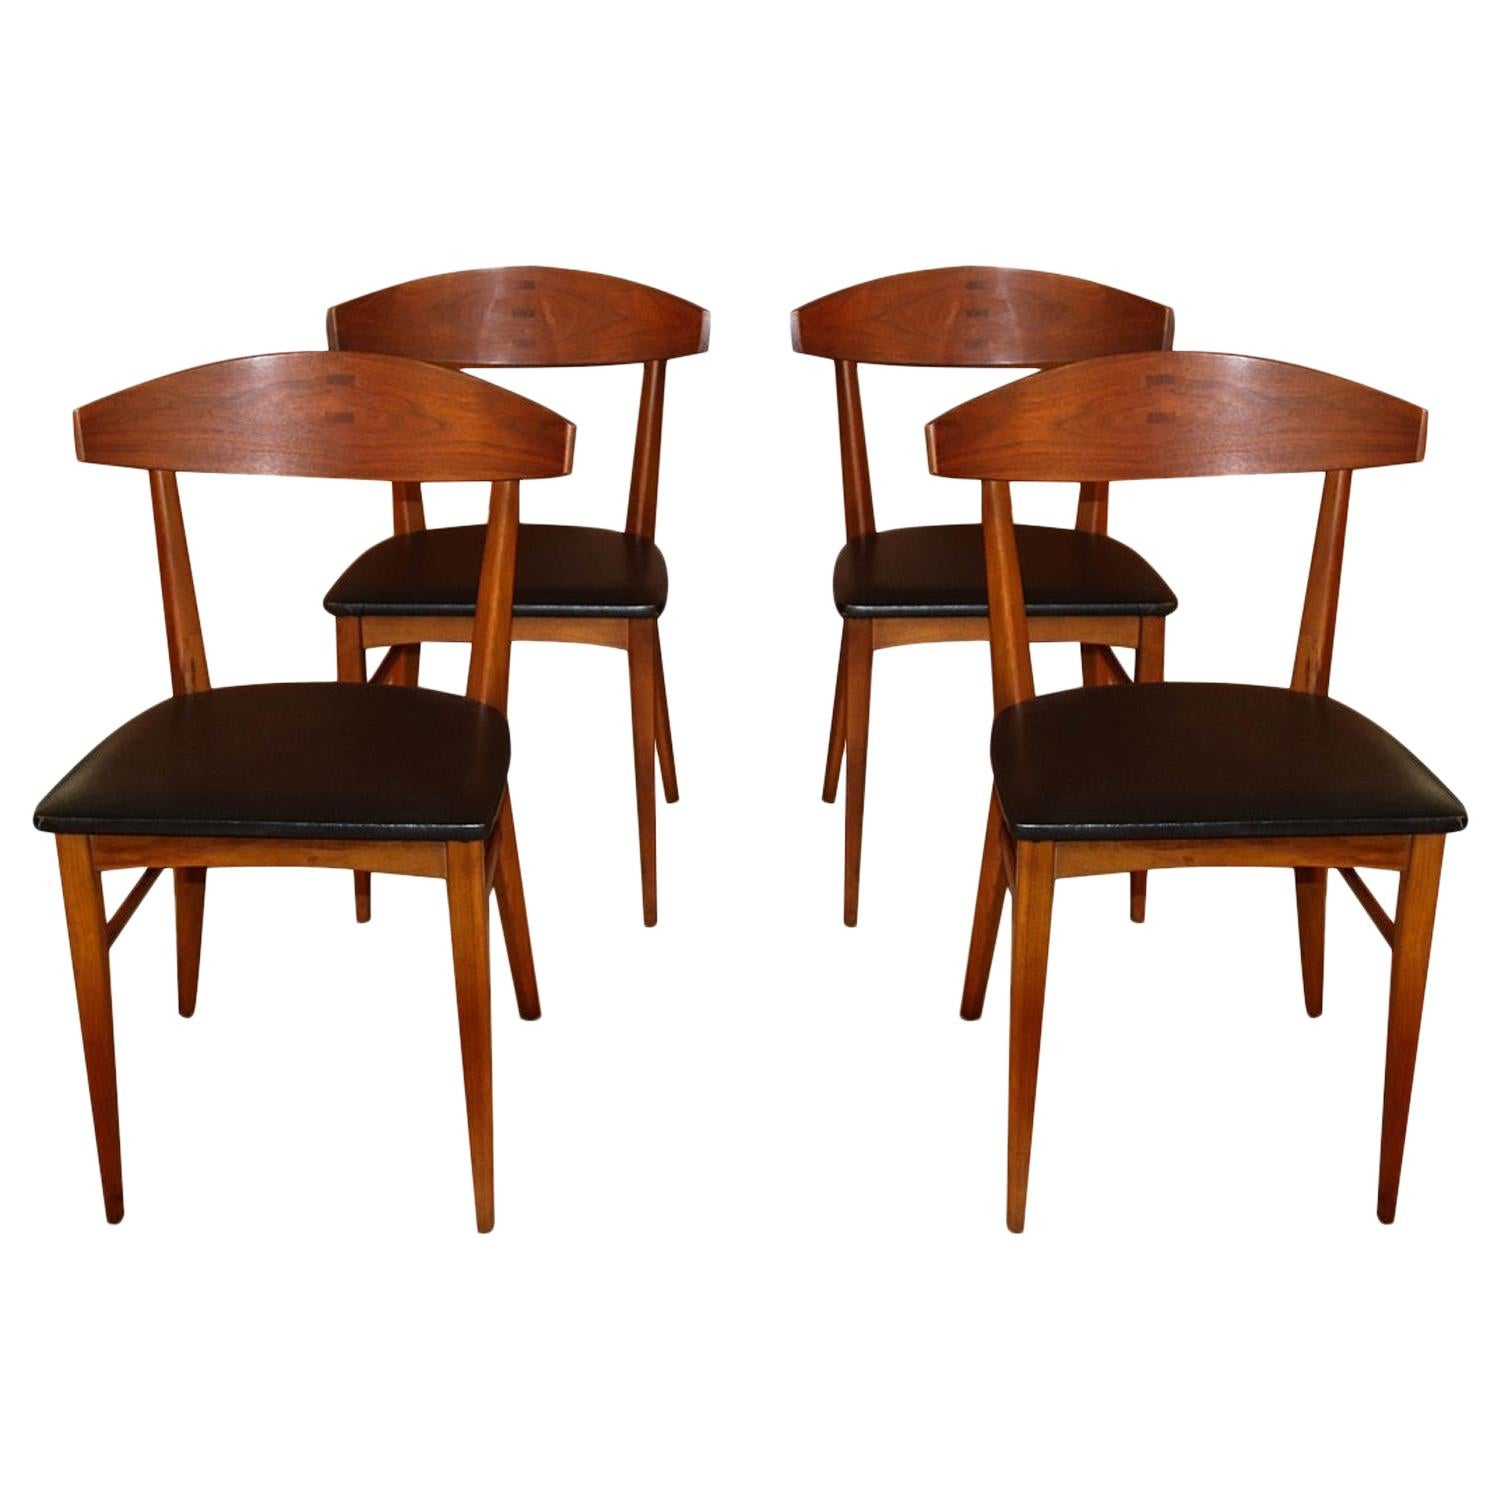 Midcentury Paul McCobb for Lane Dining Chairs